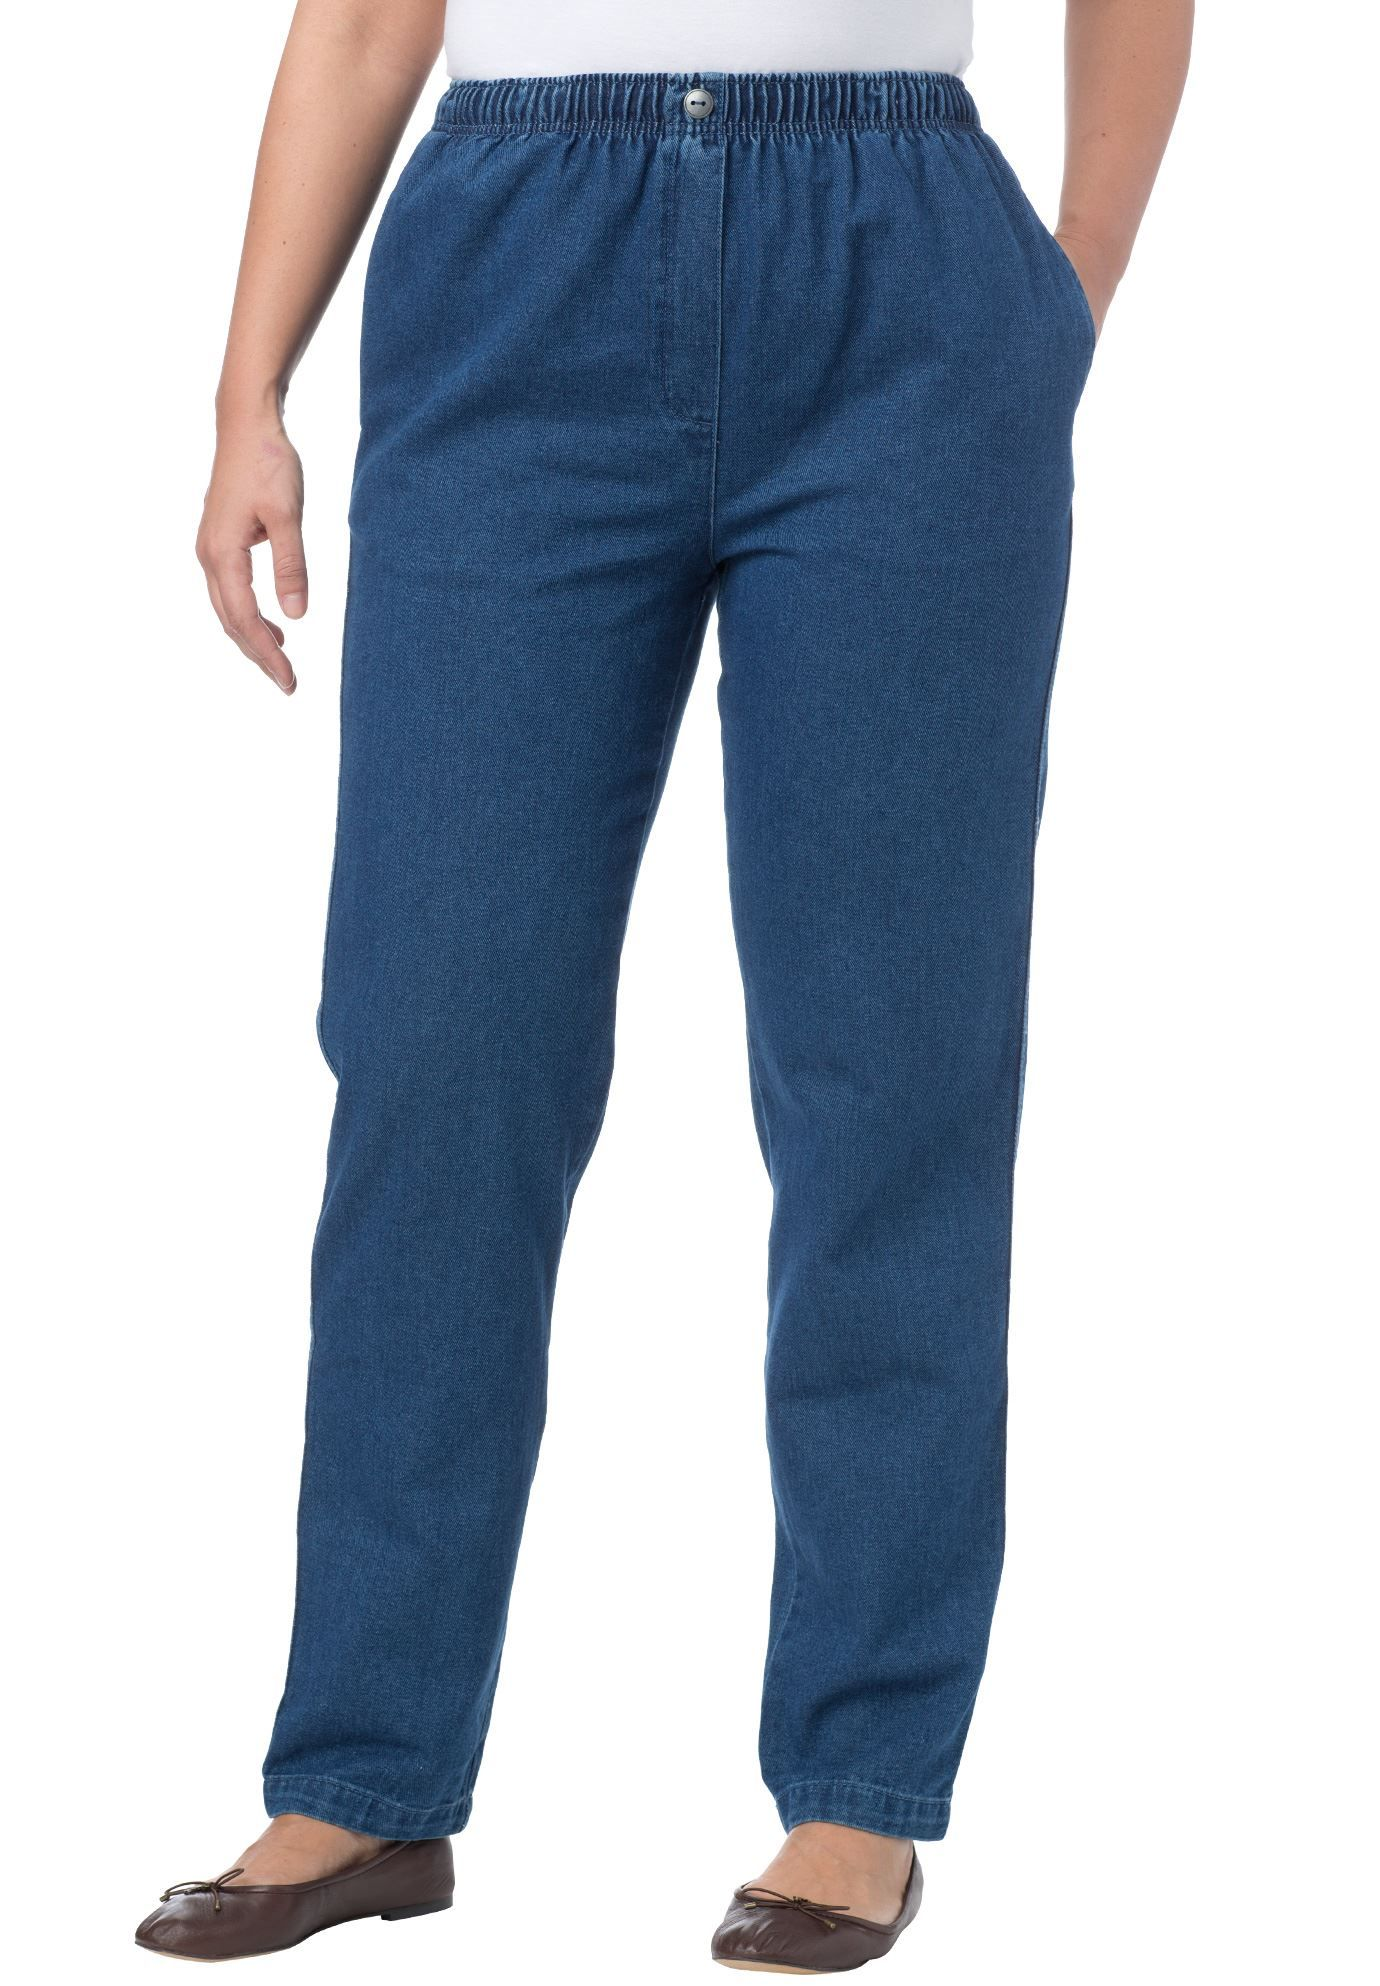 caab2c3e8b8 Cotton Straight Leg Mockfly Jean - Women's Plus Size Clothing | Products